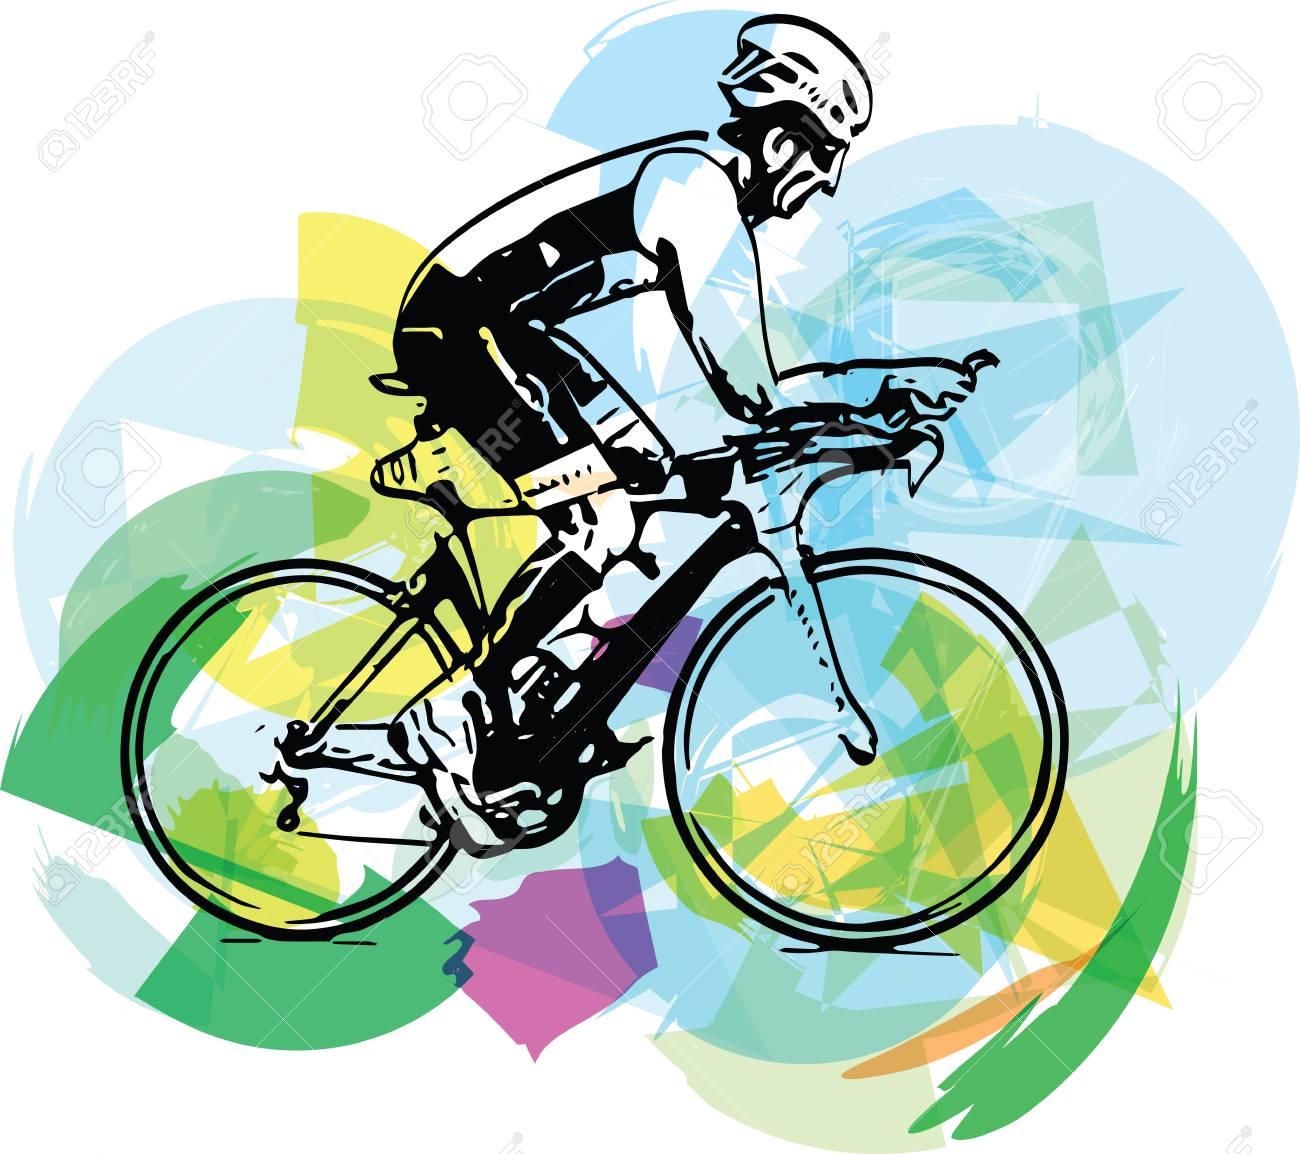 Sketch Of Male On A Bicycle With Abstract Background Royalty Free Cliparts Vectors And Stock Illustration Image 73192112